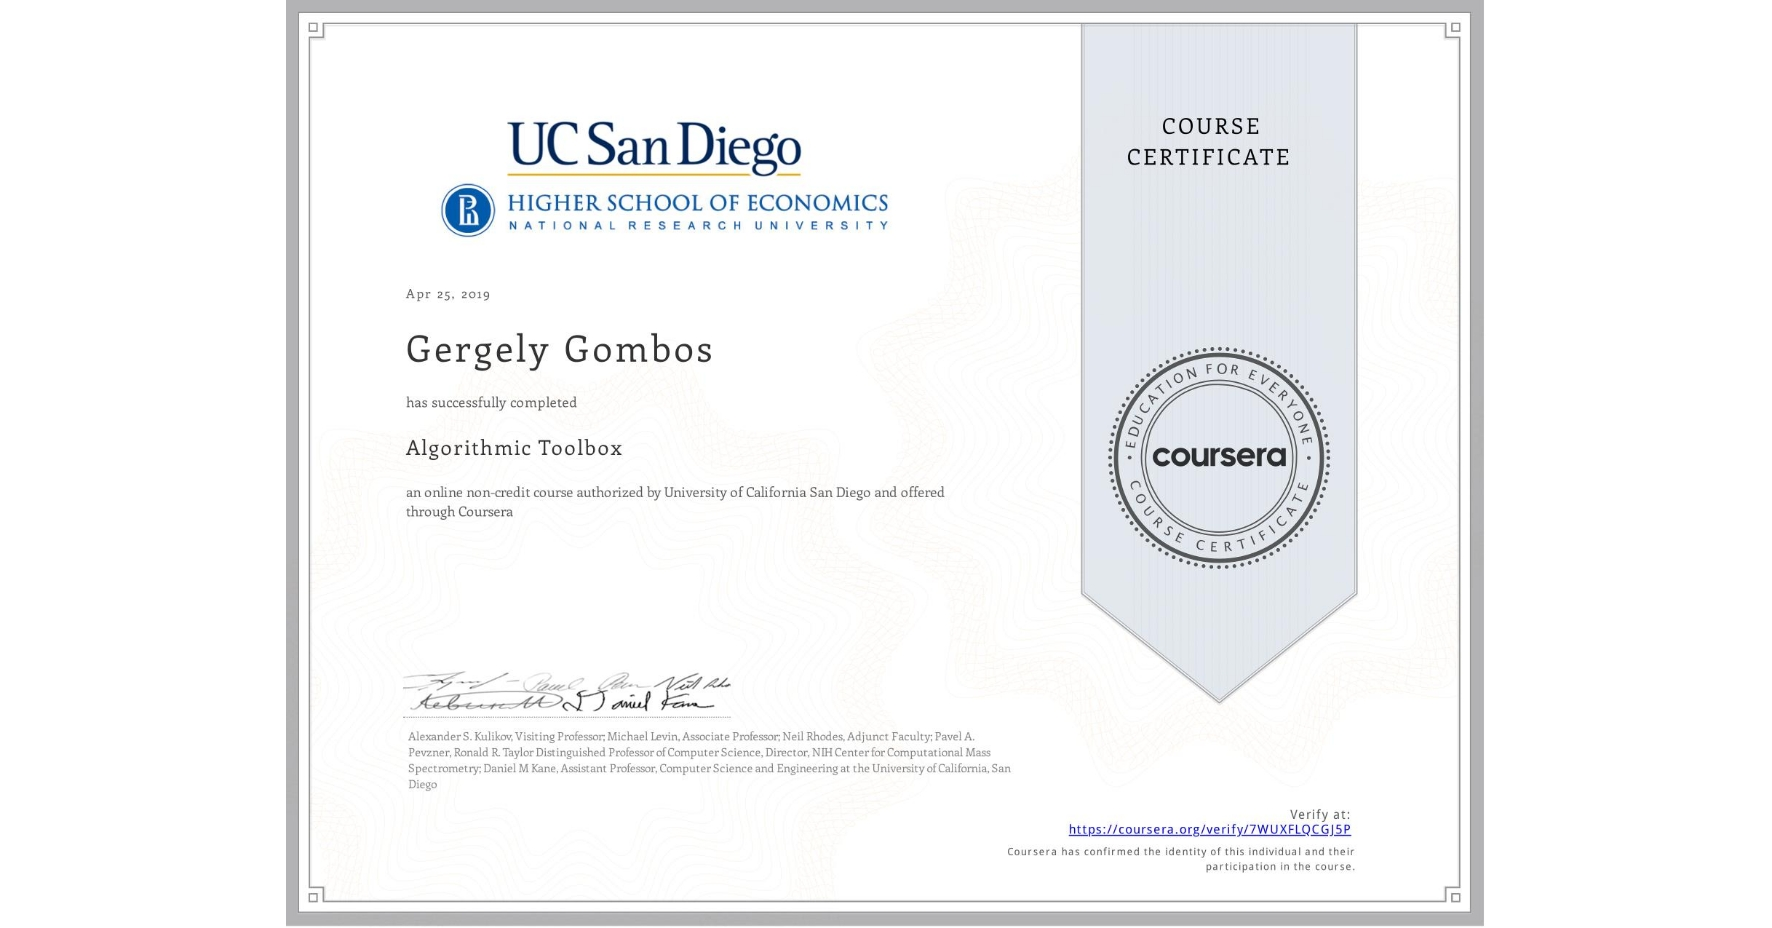 View certificate for Gergely Gombos, Algorithmic Toolbox, an online non-credit course authorized by University of California San Diego & National Research University Higher School of Economics and offered through Coursera